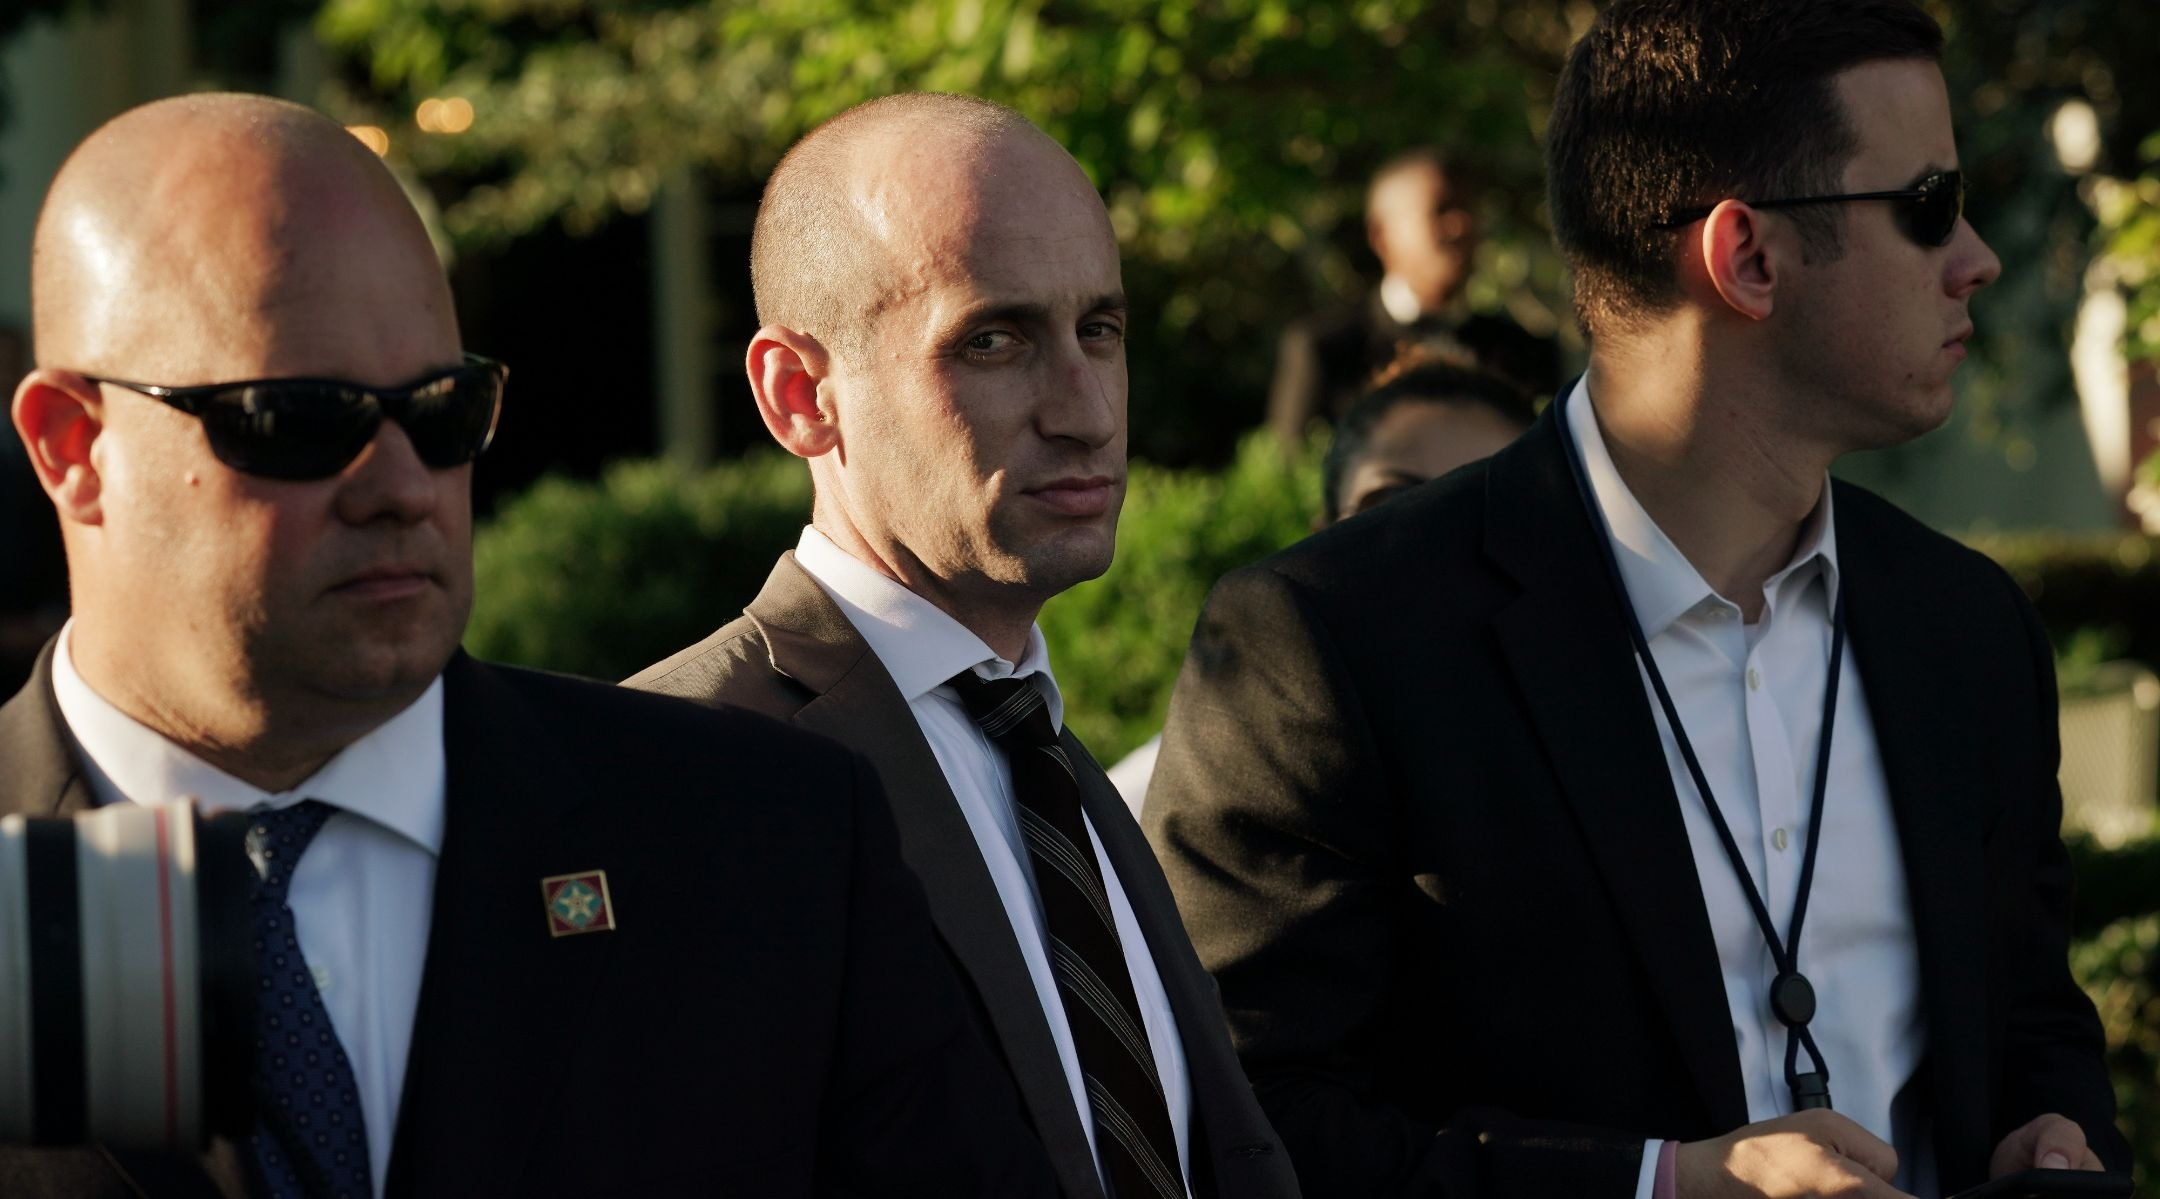 Southern Poverty Law Center identifies Stephen Miller as an extremist